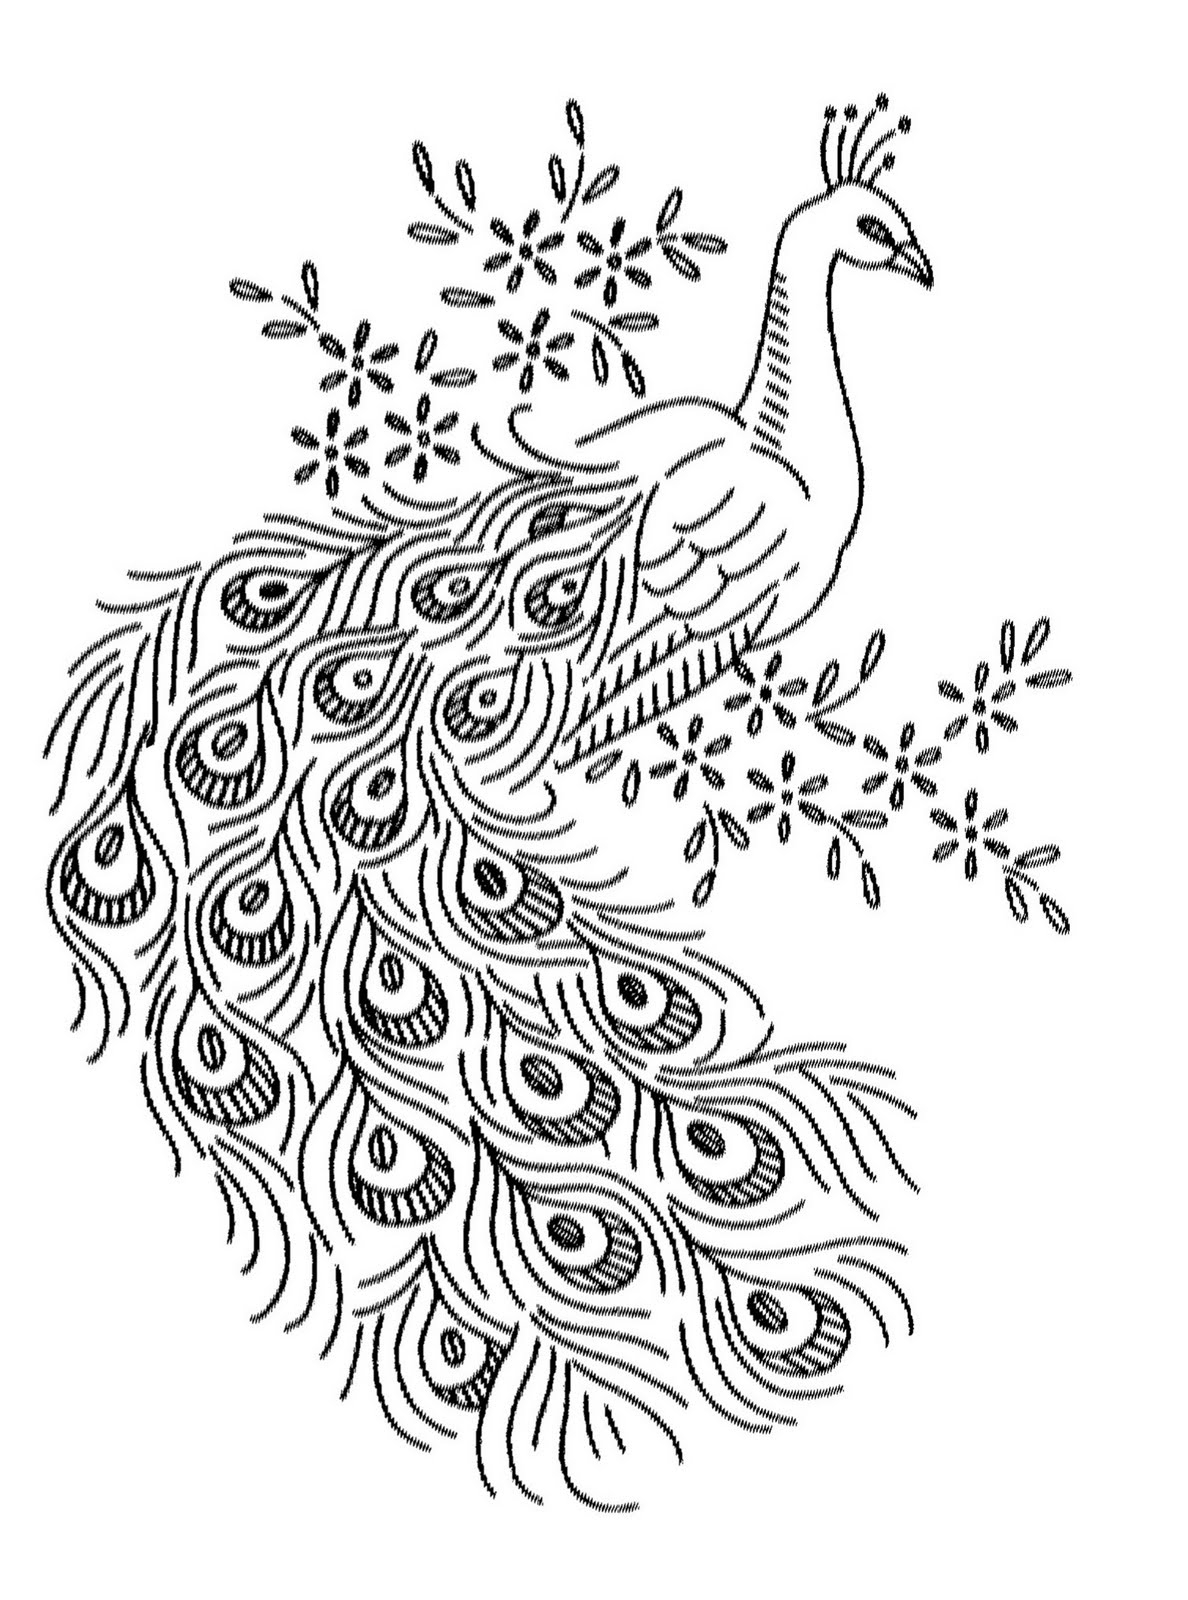 coloring outline image of peacock peacock drawing outline at paintingvalleycom explore coloring image peacock outline of